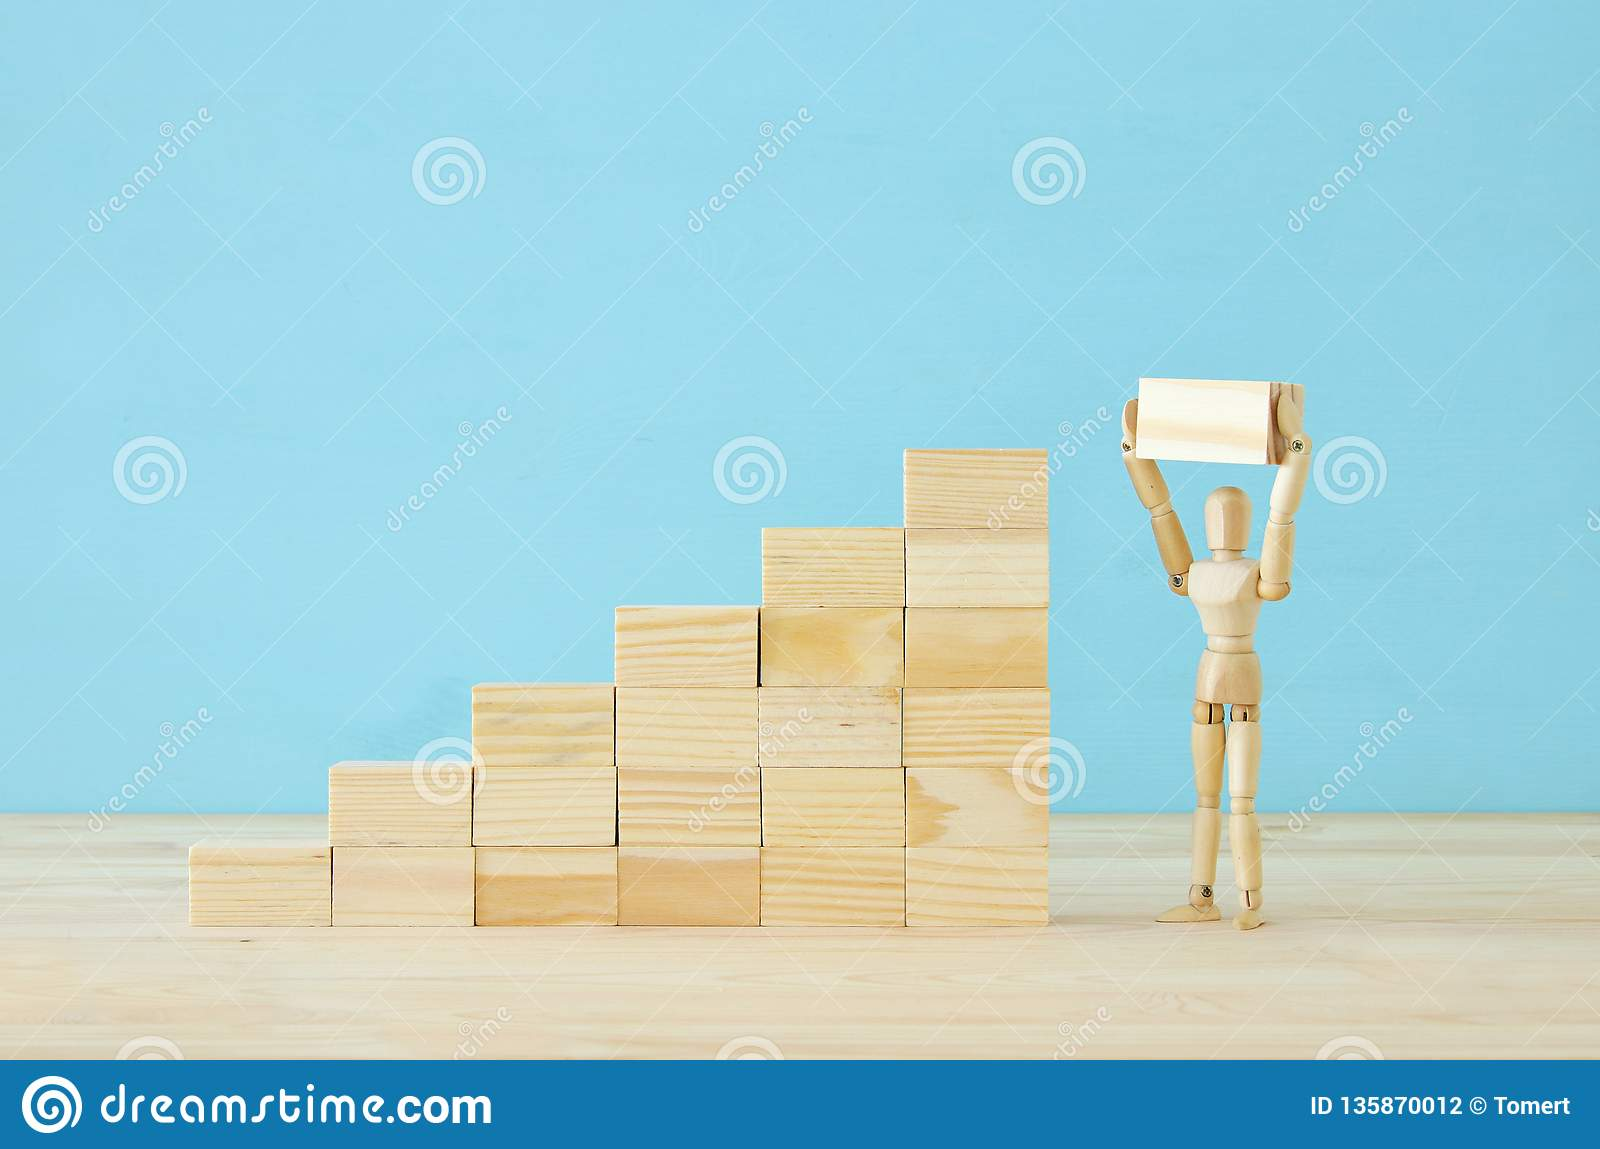 concept photo of obstacles overcoming, wooden dummy looking at a barrier and thinking about solution.